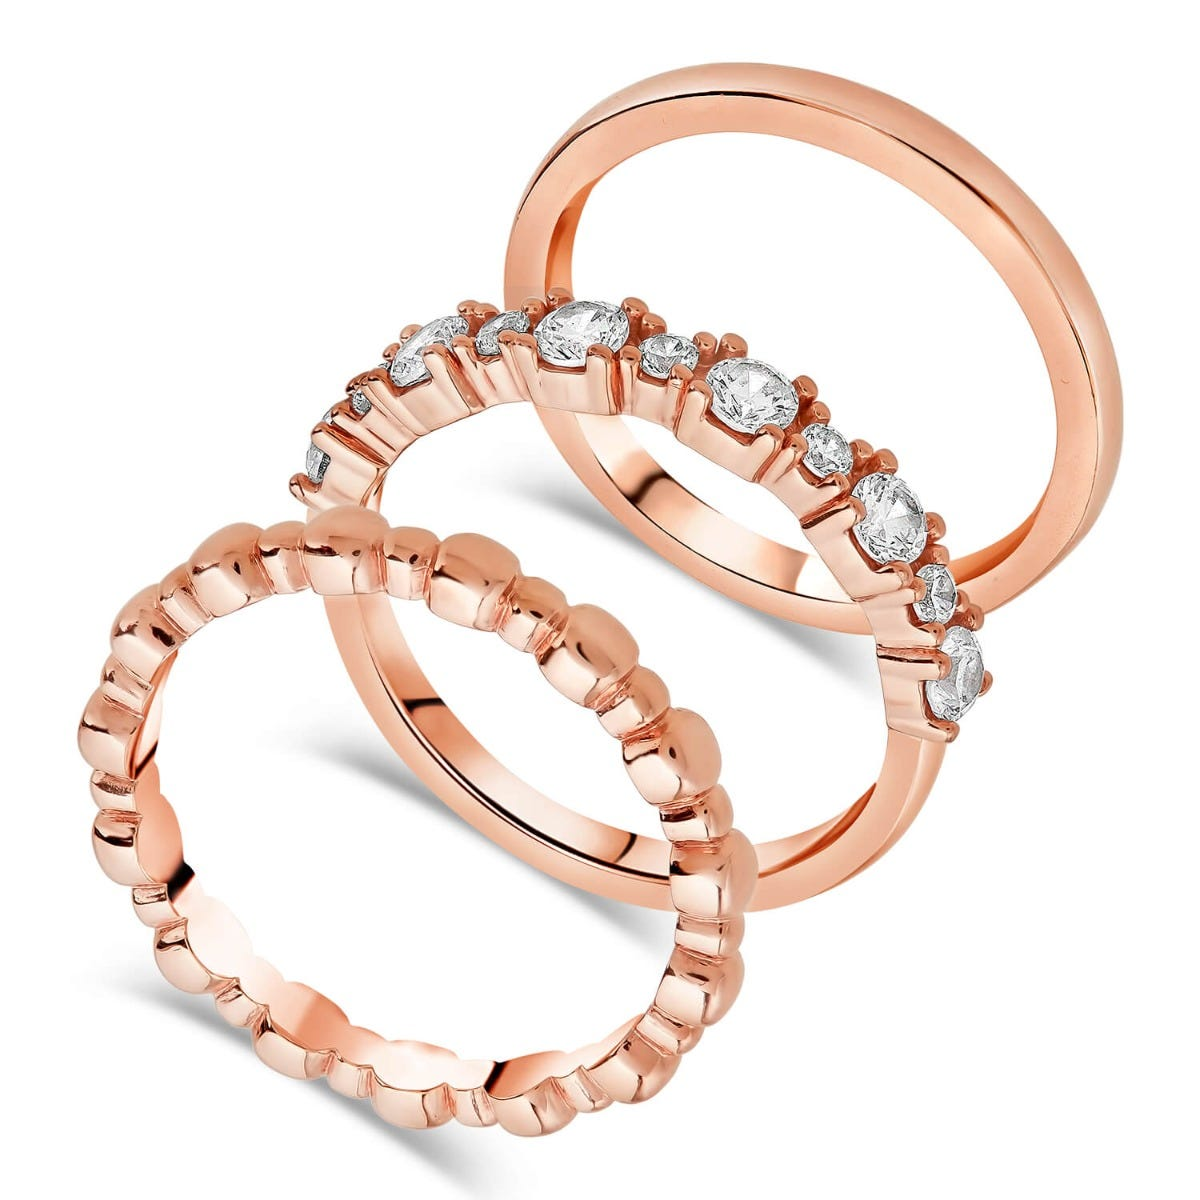 Bronzallure 18ct Rose Gold-Plated Set of Stackable Rings